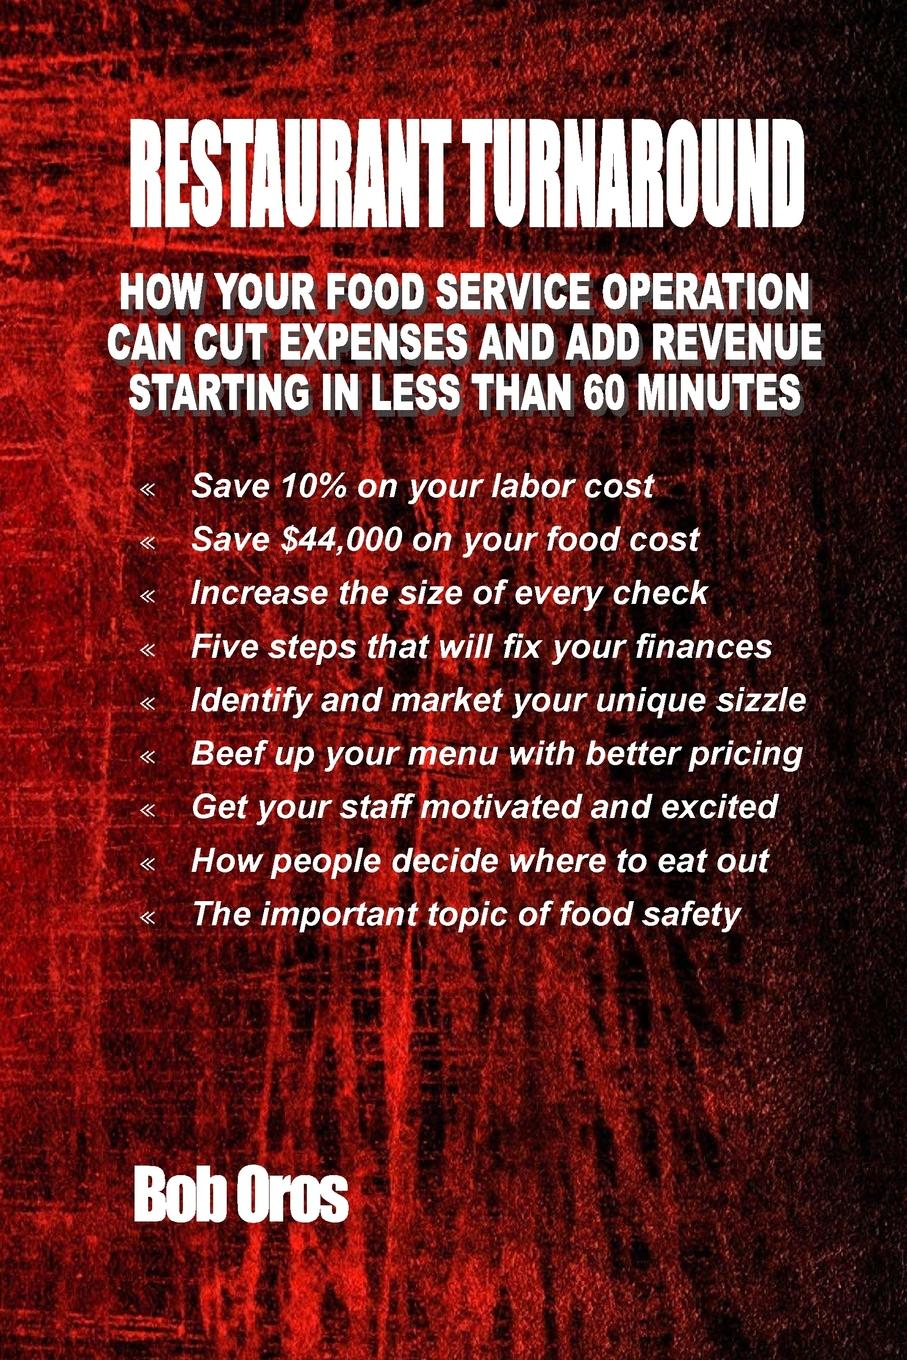 Restaurant Turnaround. How Your Food Service Operation Can Cut Expenses and Add Revenue Starting in Less Than 60 Minutes Save 10% on your labor cost - Save $44,000 on your food cost...